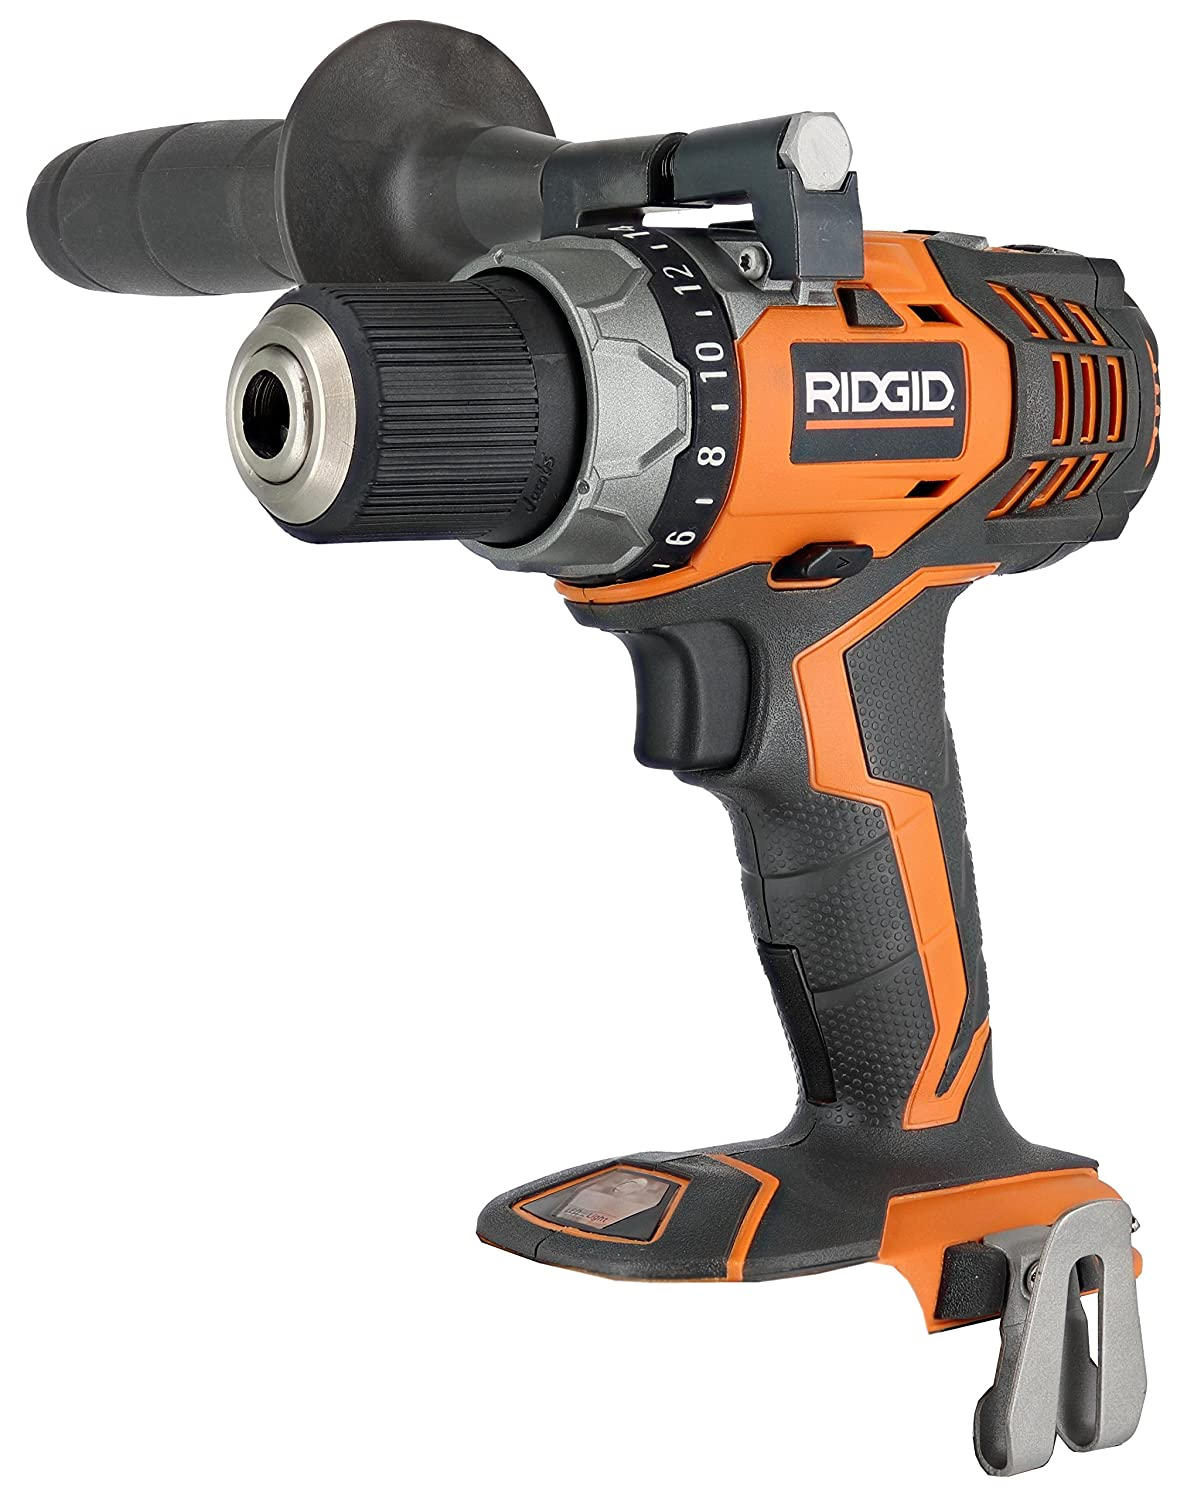 power pick - best power product - ridgid fuego r86008 18v cordless compact drill/driver